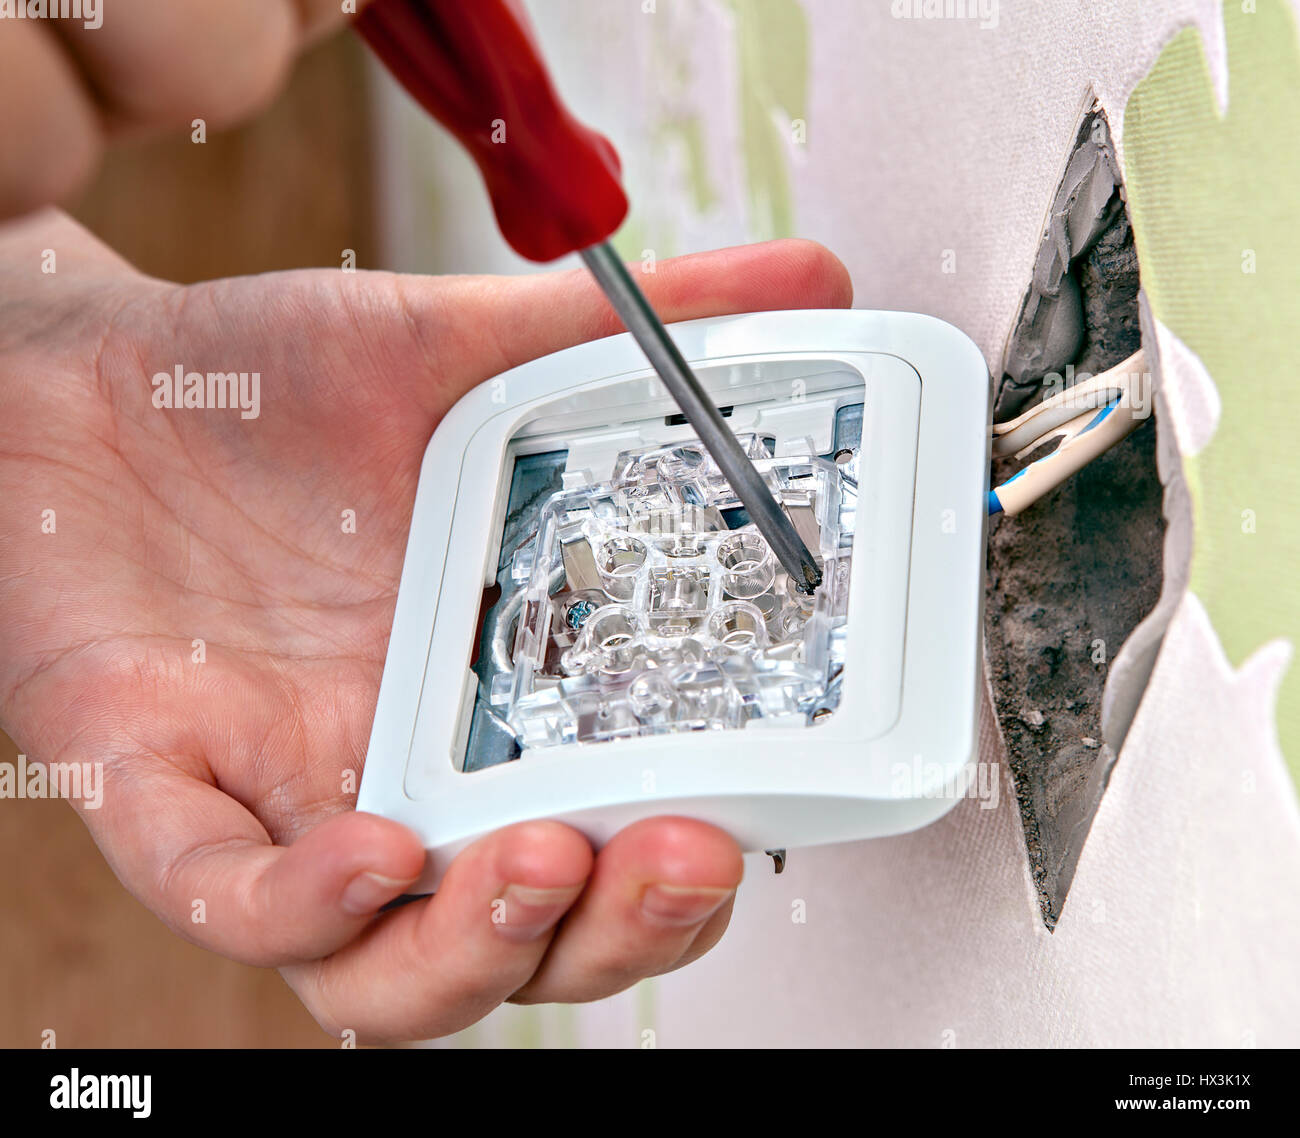 Change light switch, connect the wires from house wiring Stock Photo ...